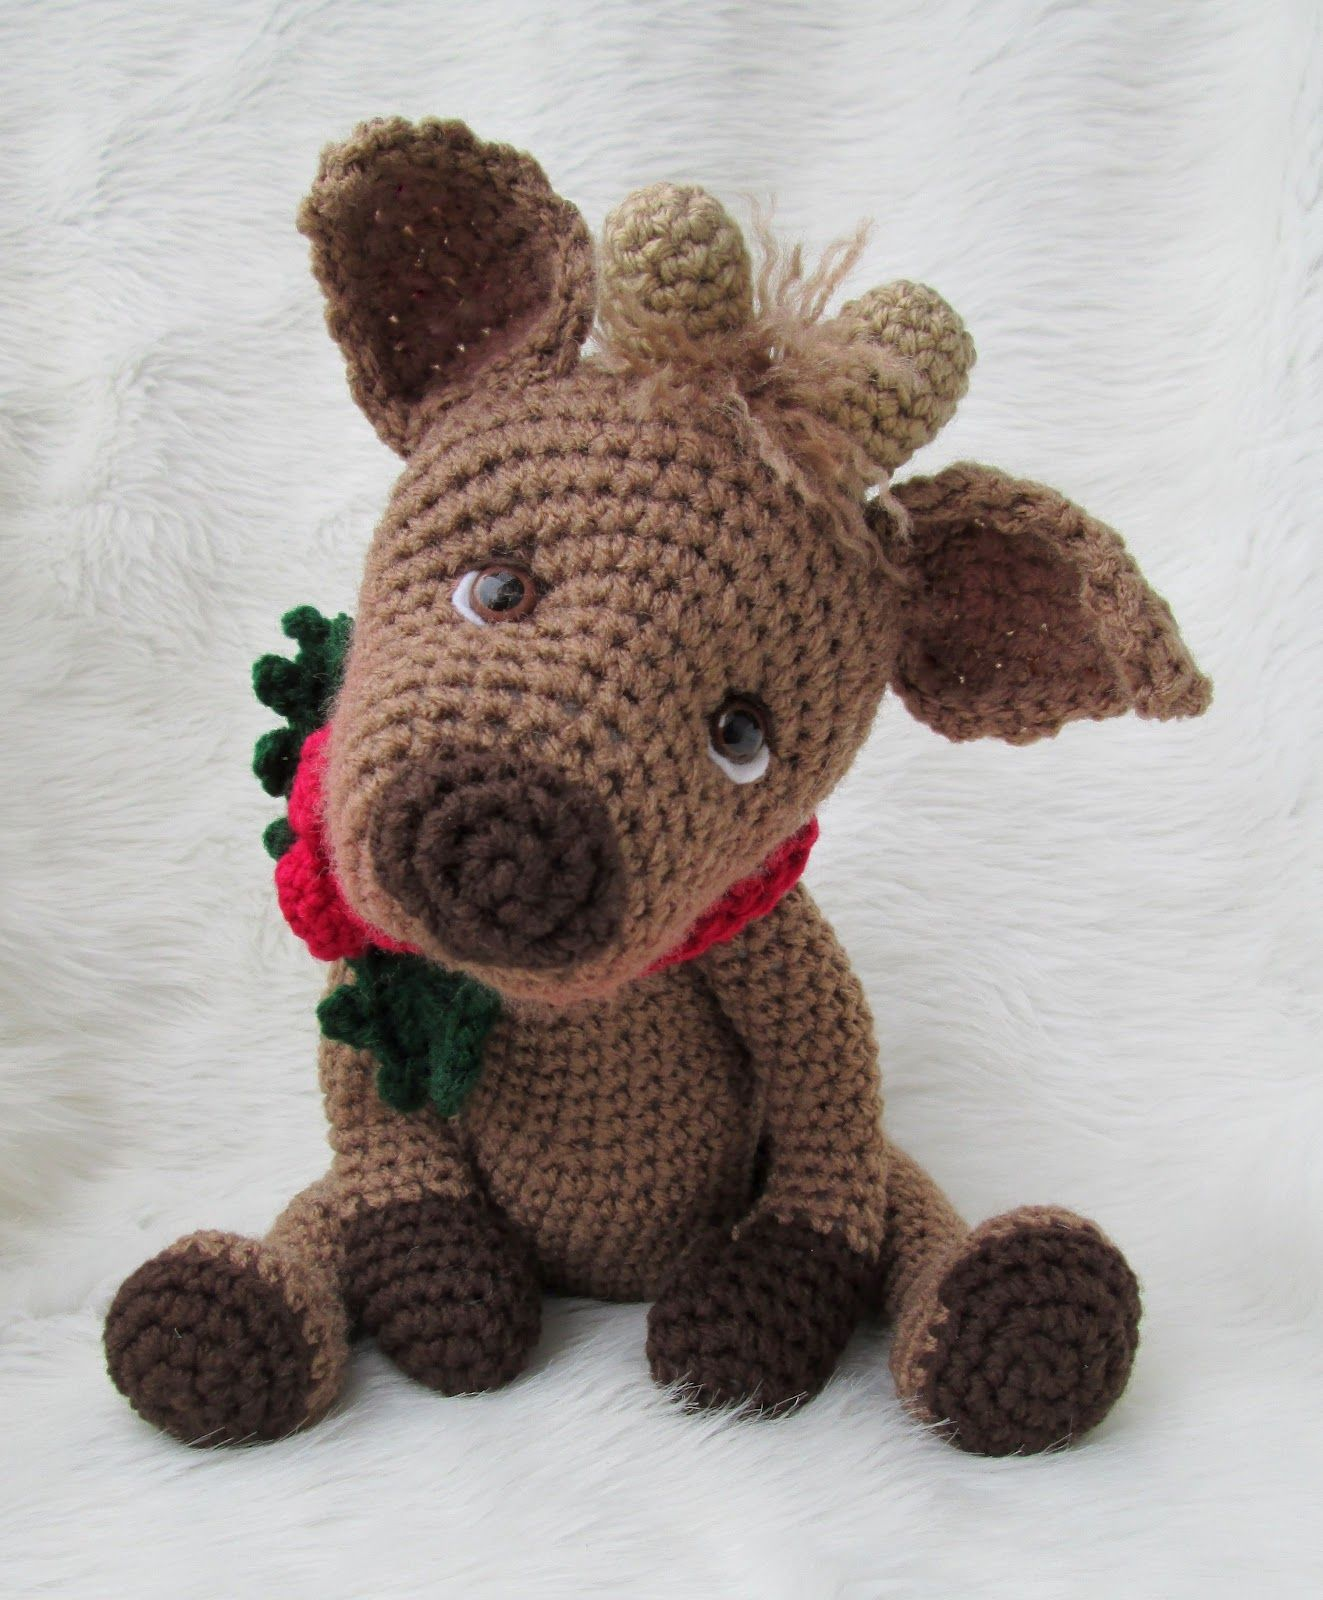 Free christmas crochet patterns all the best ideas free crochet free christmas crochet patterns all the best ideas bankloansurffo Images